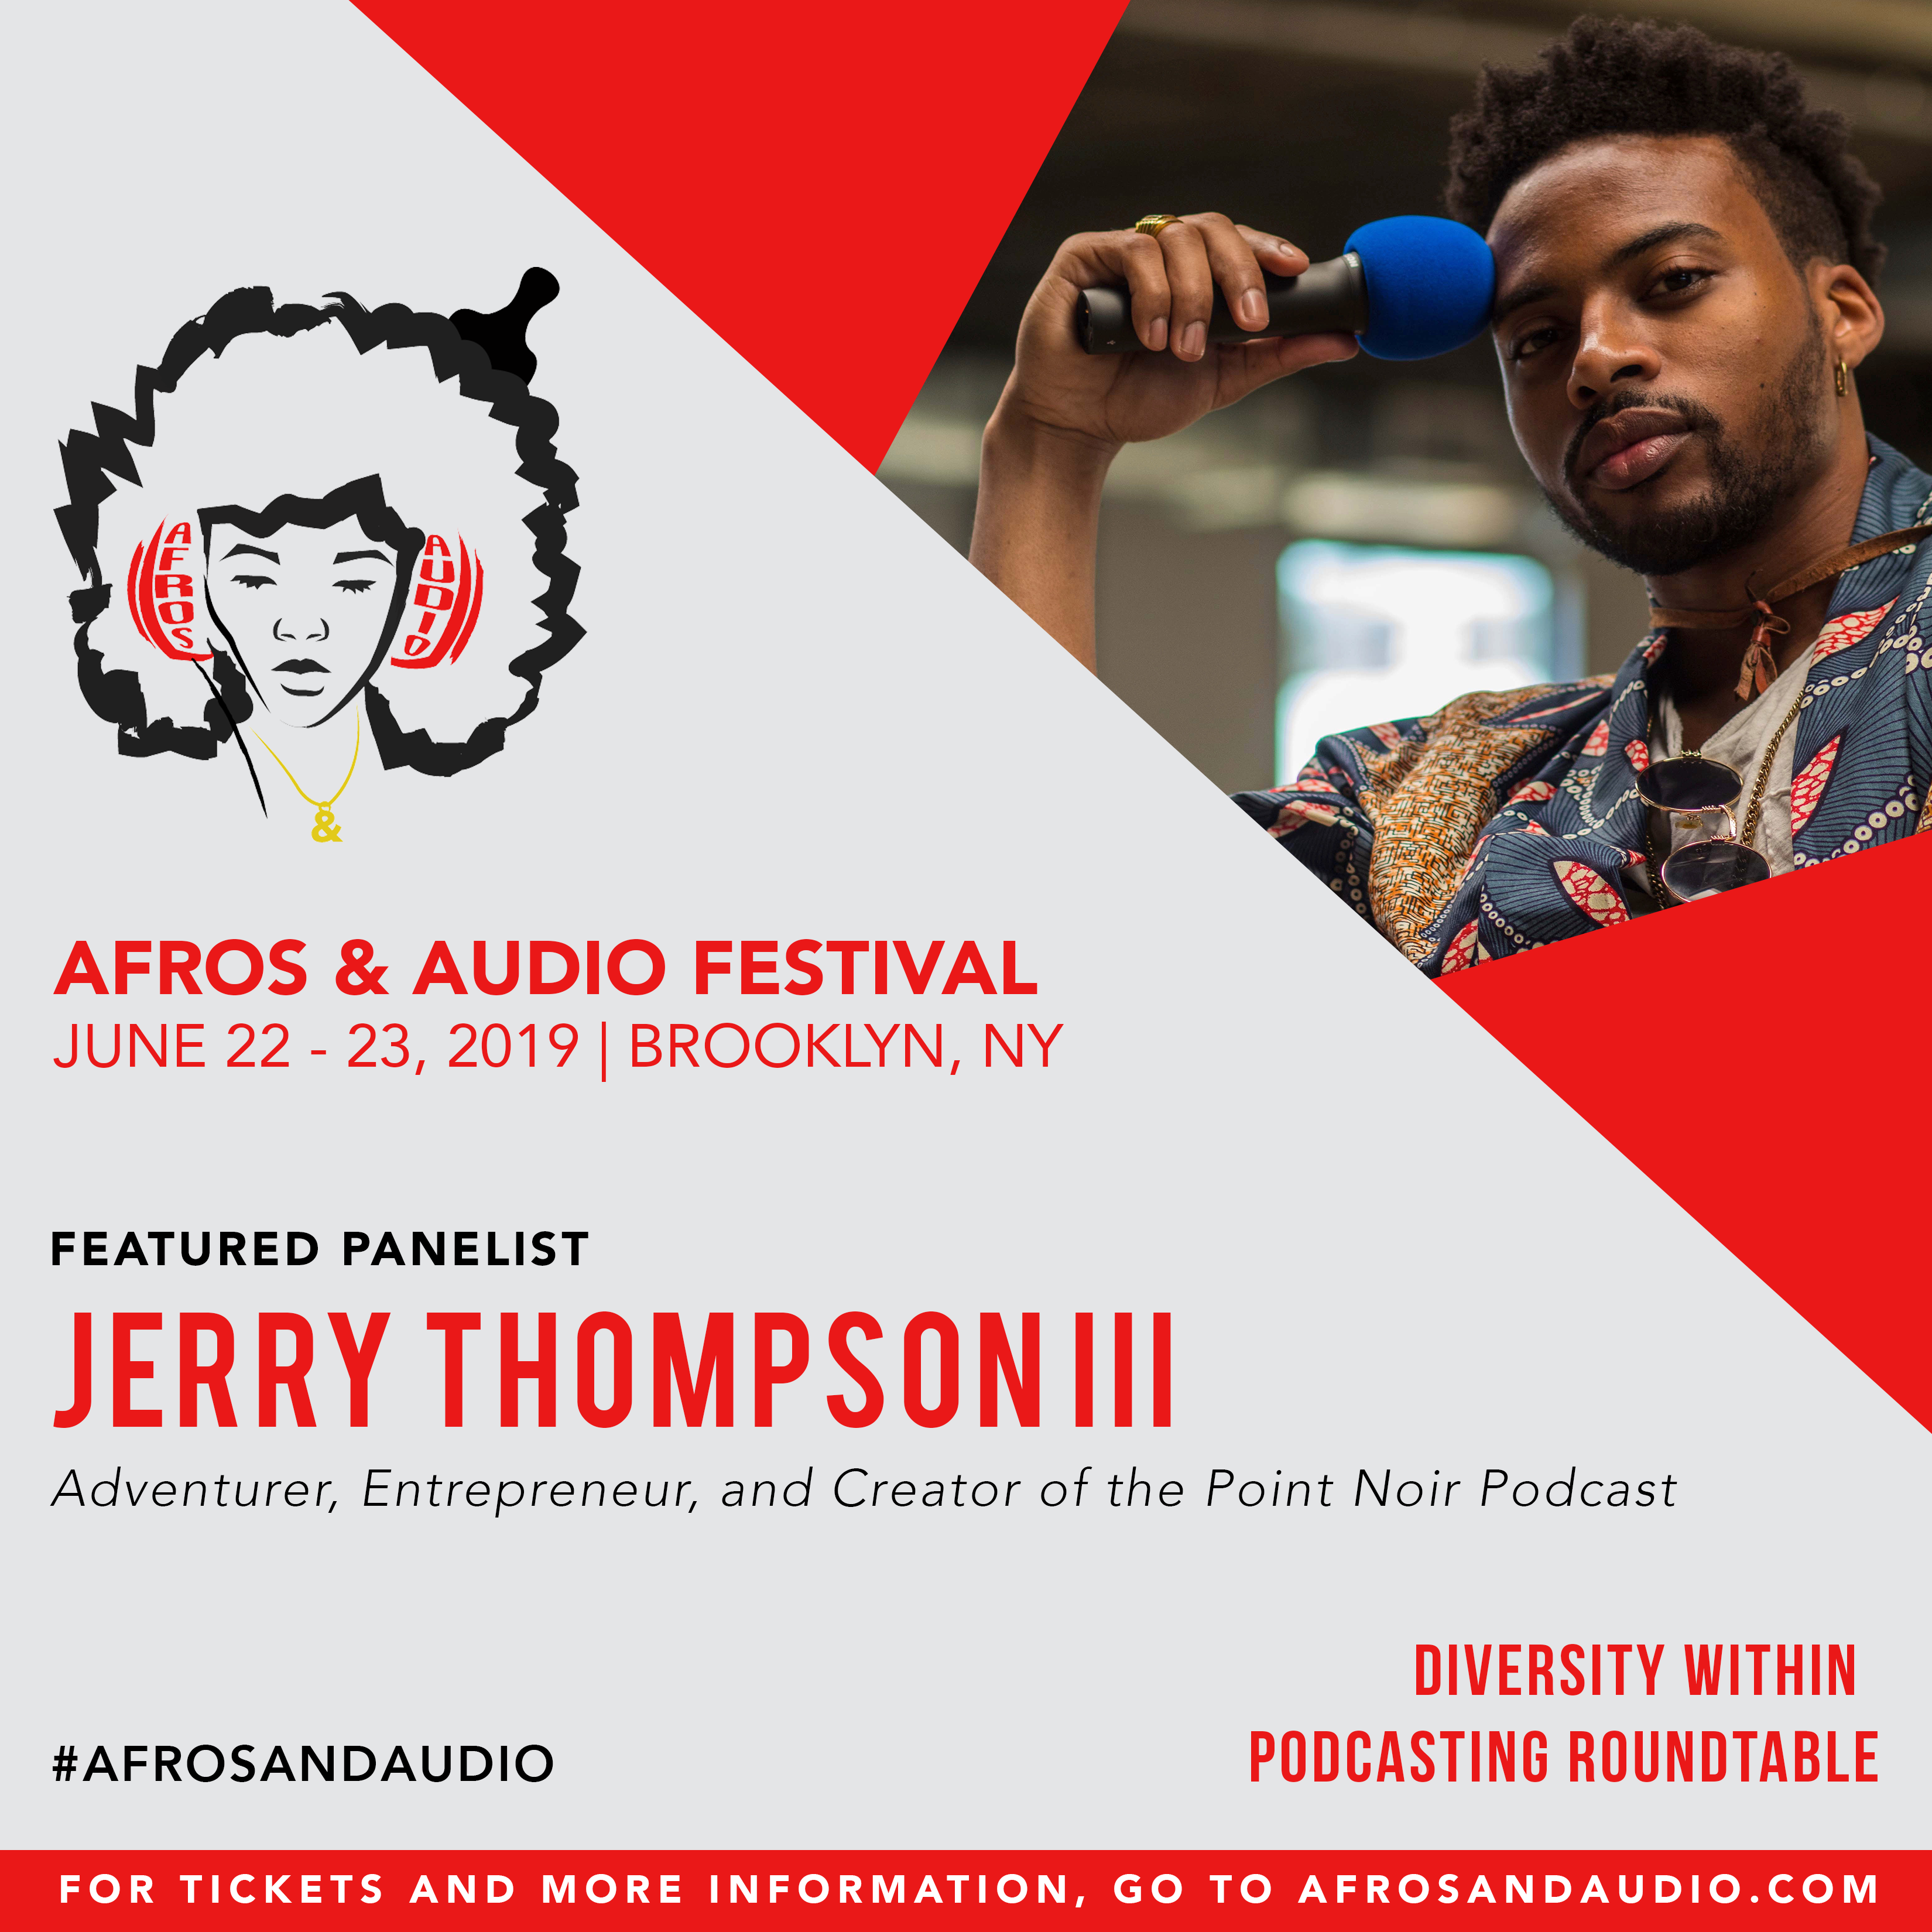 AfrosandAudio Presenter Posts - Jerry